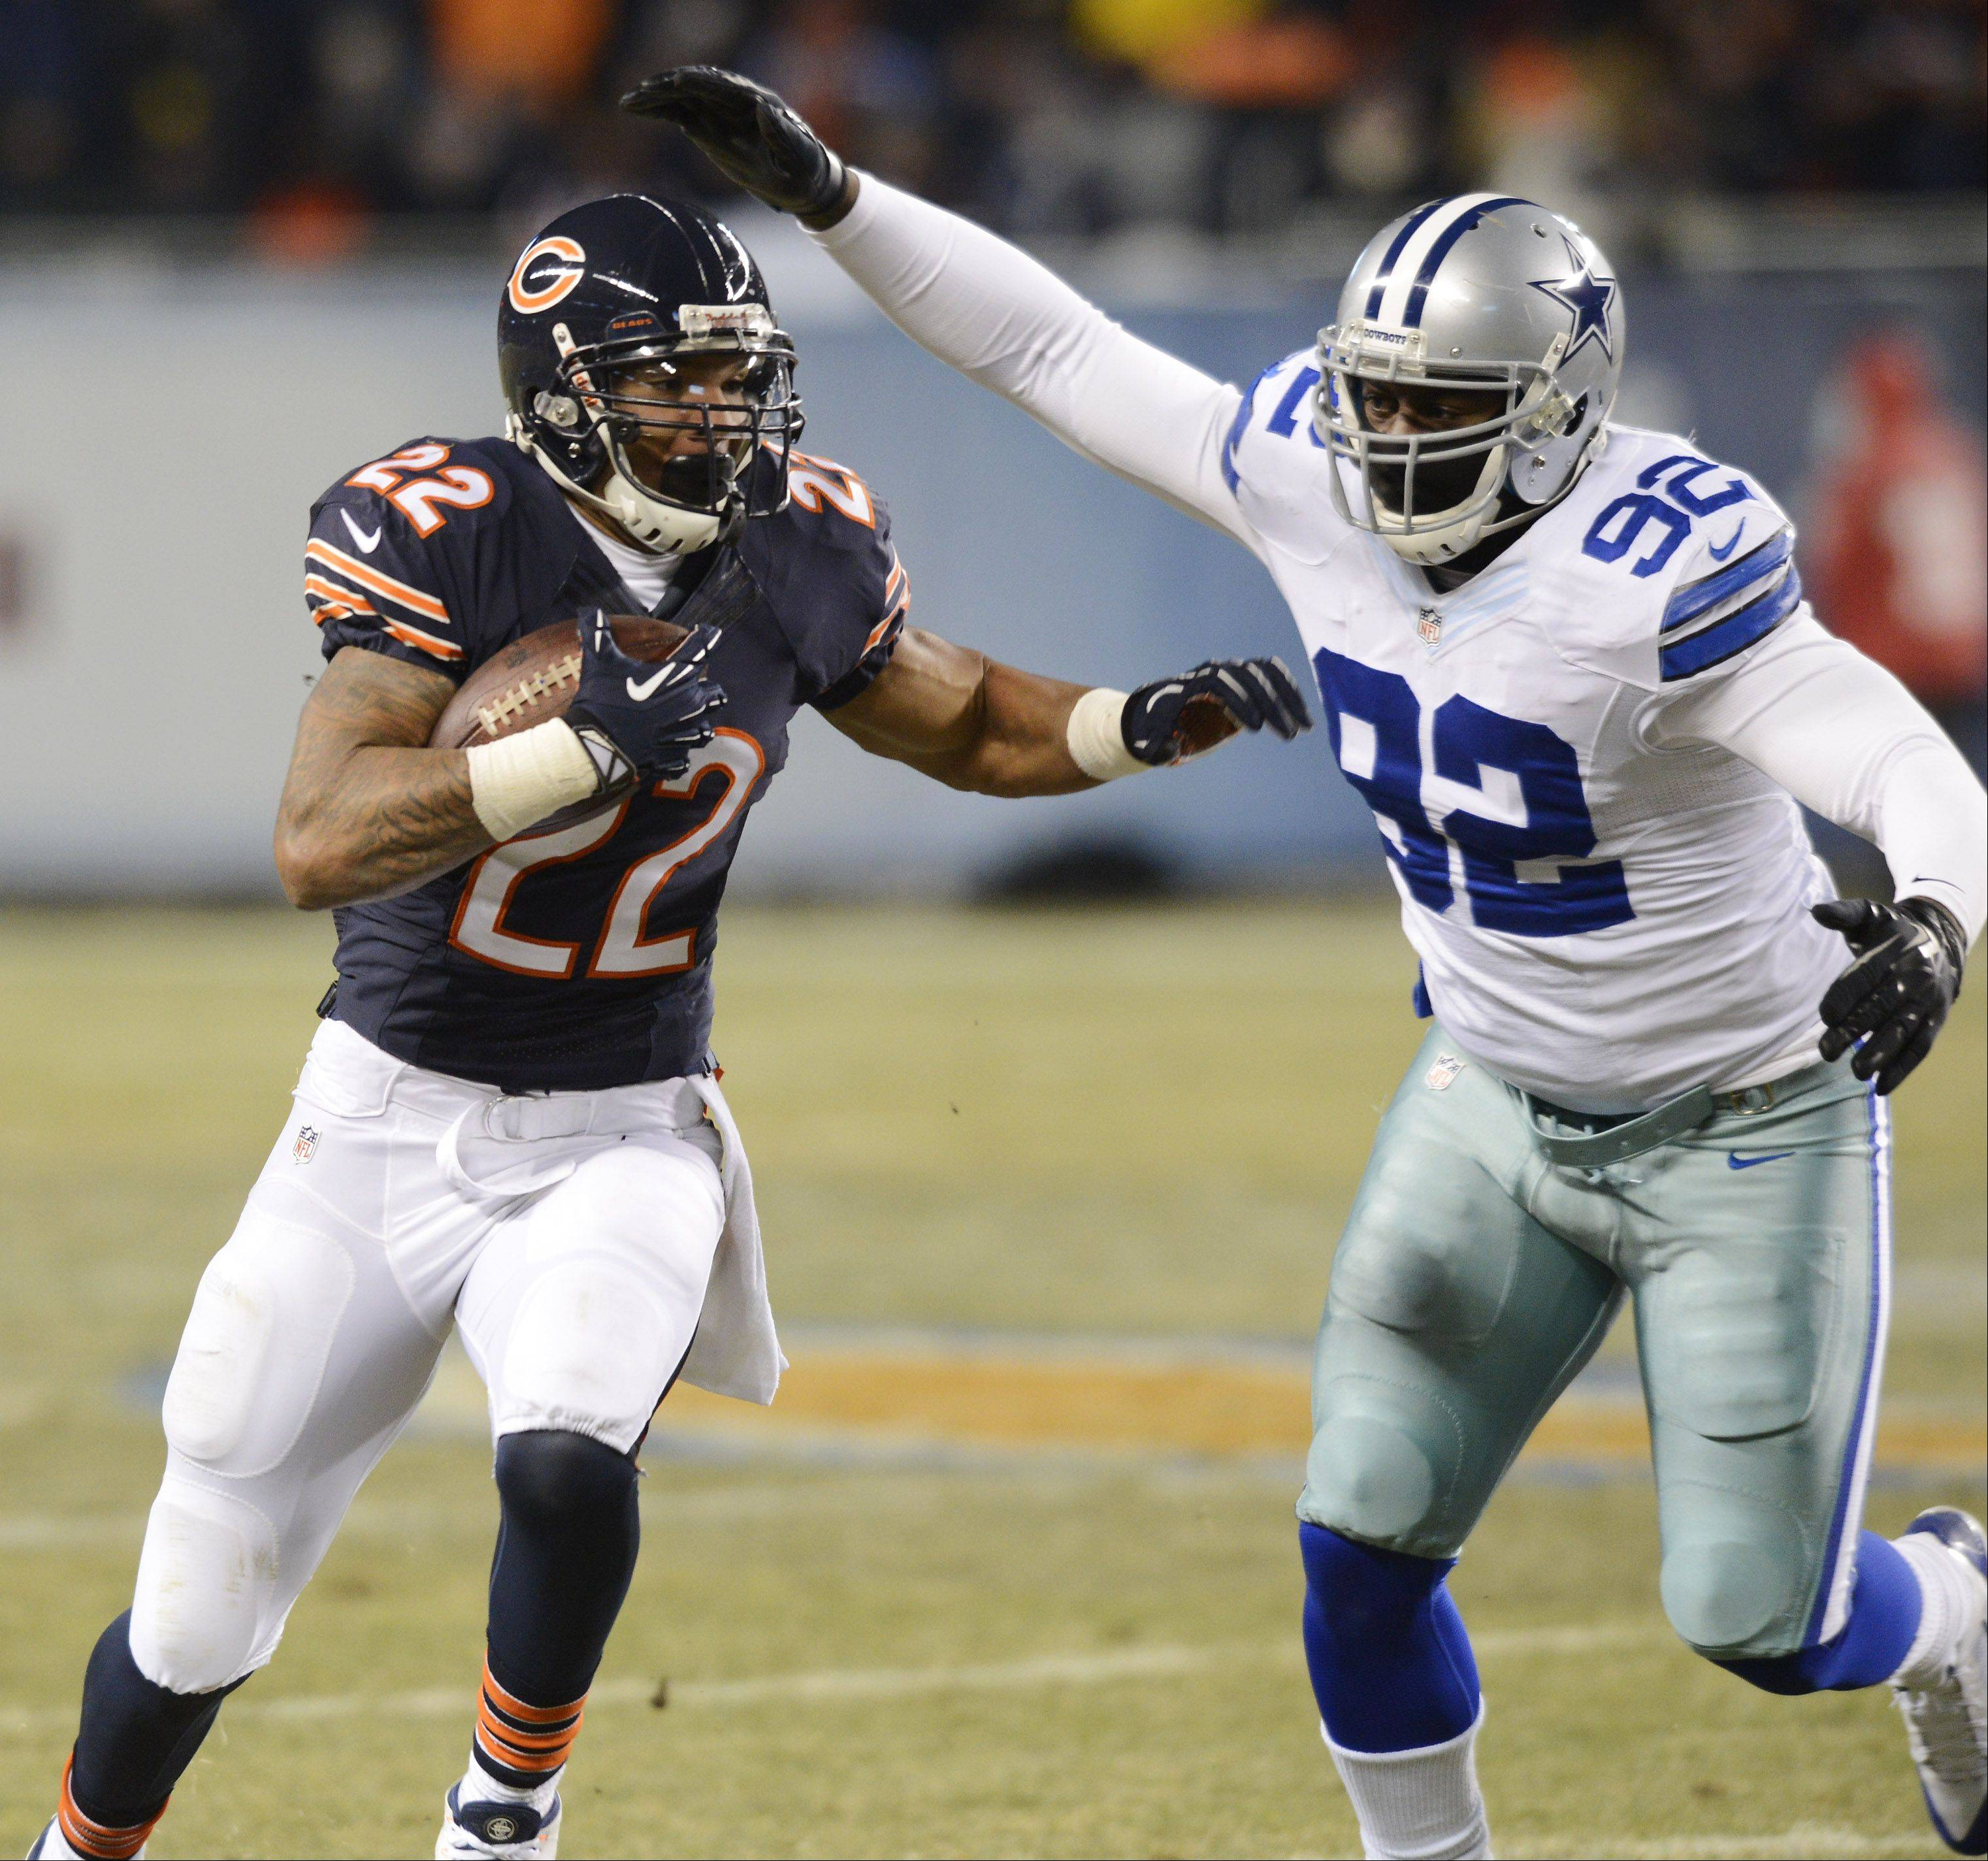 Chicago Bears running back Matt Forte runs past Dallas Cowboys defensive end Jarius Wynn.